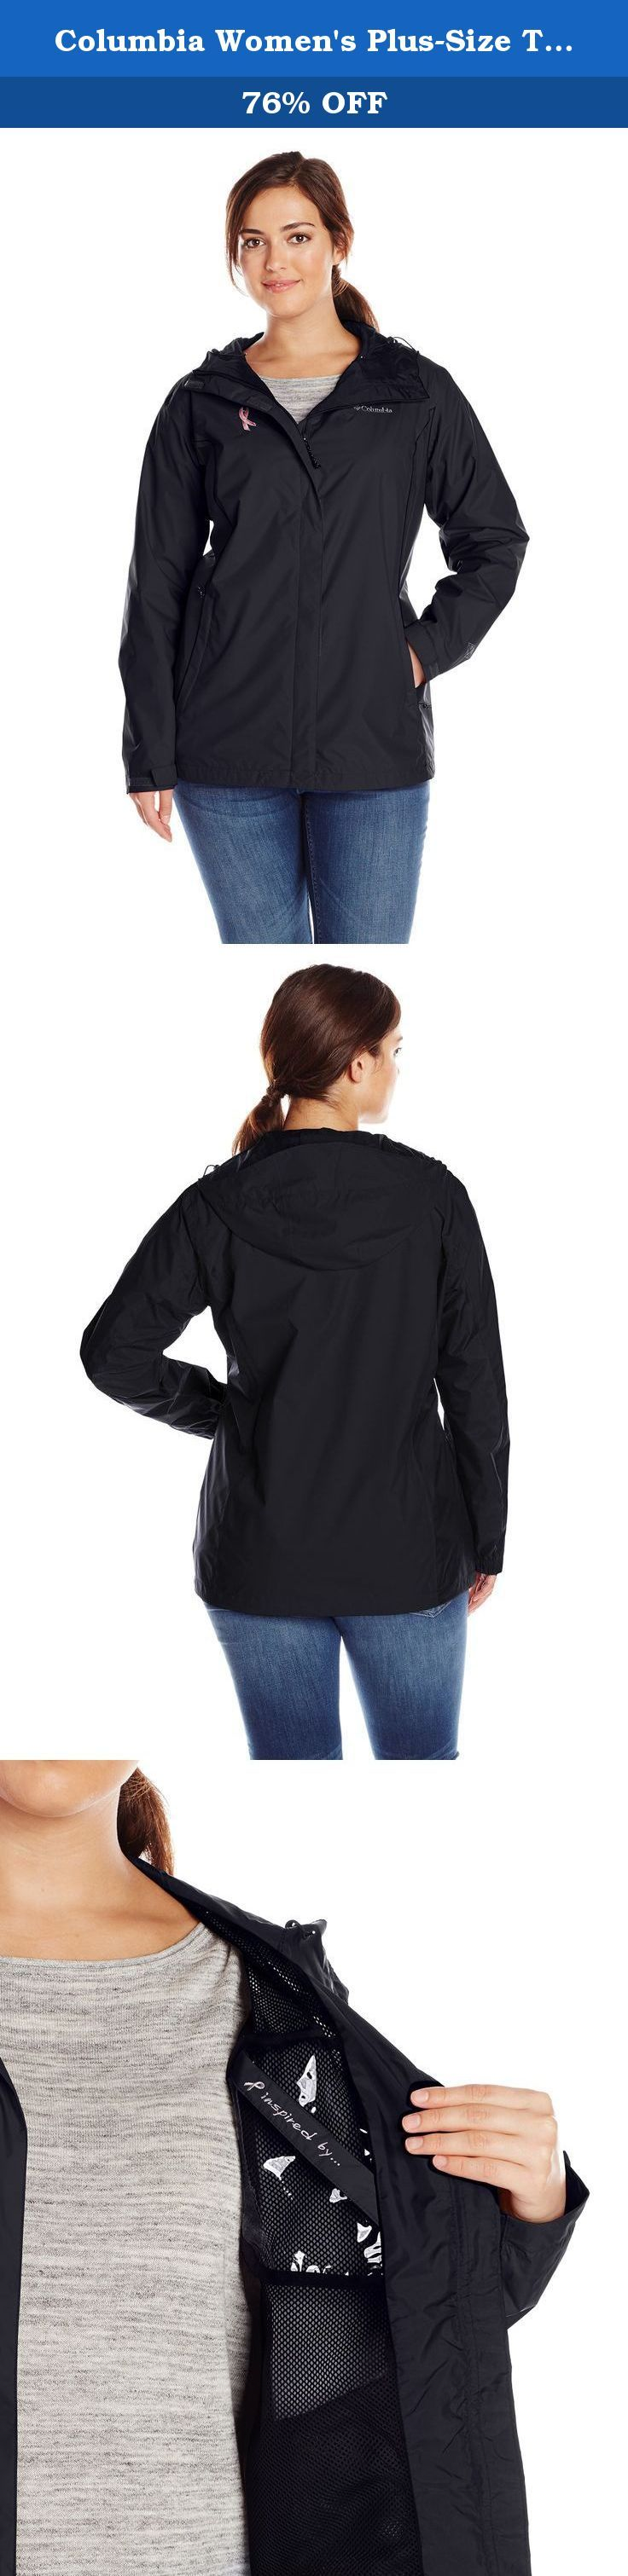 Columbia Women's Plus-Size Tested Tough In Pink Rain Jacket II Plus, Black, 3X. Helping fund the national breast cancer foundation's key prevention programs, this sleek rain jacket is waterproof and fully seam-sealed, with an interior inspiration pocket that sits right over your heart.